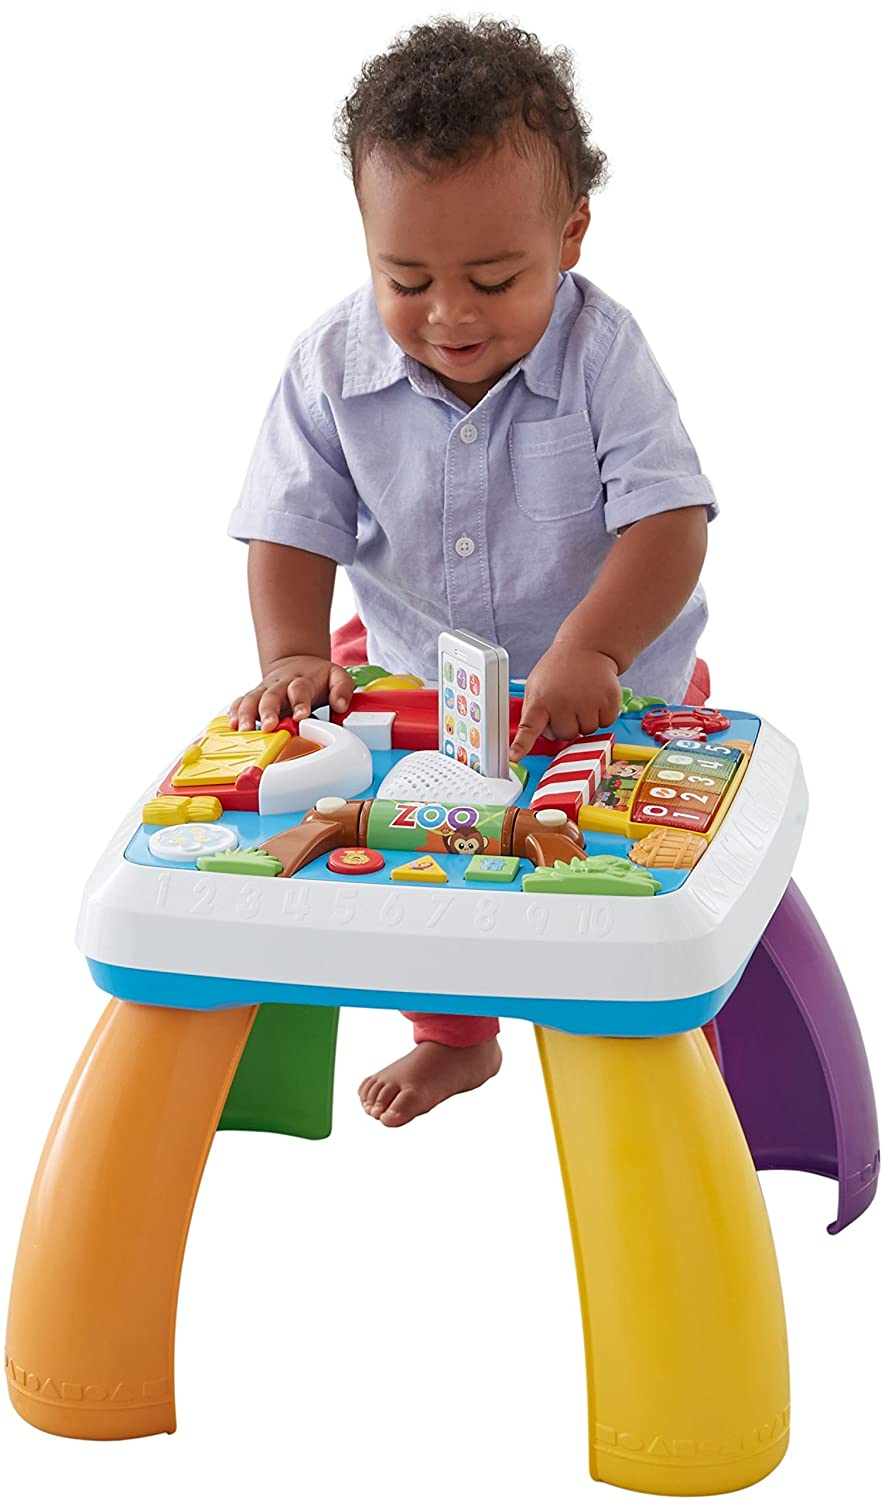 Top 10 Best Toddler Activity Tables